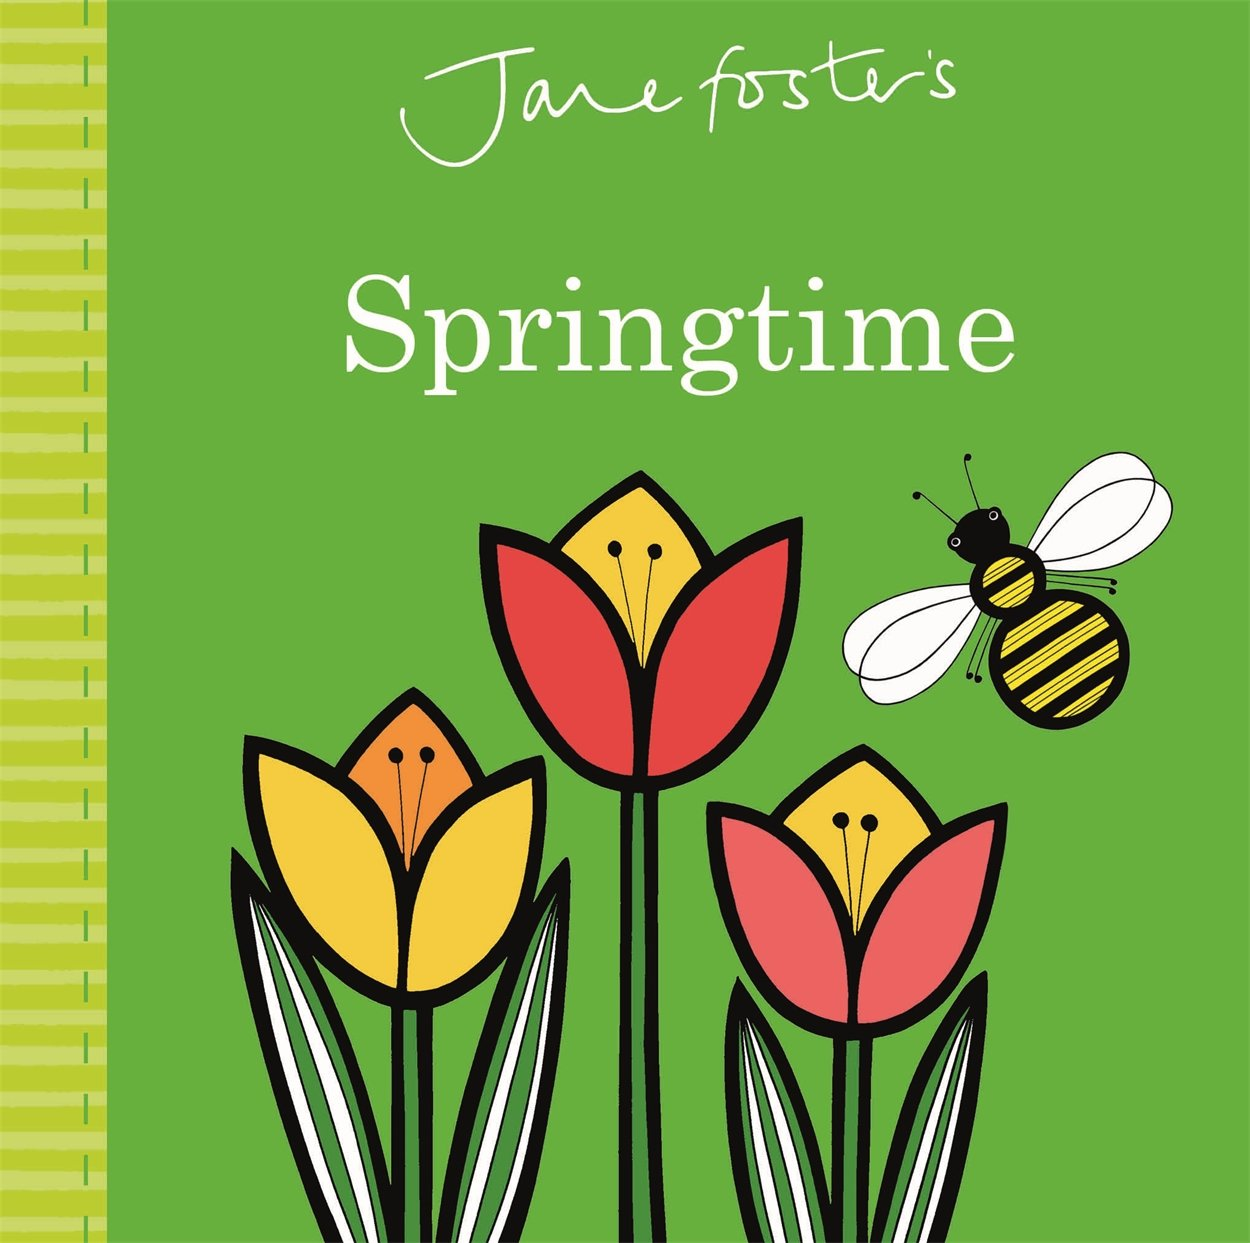 Jane Foster's Springtime (Jane Foster Books)